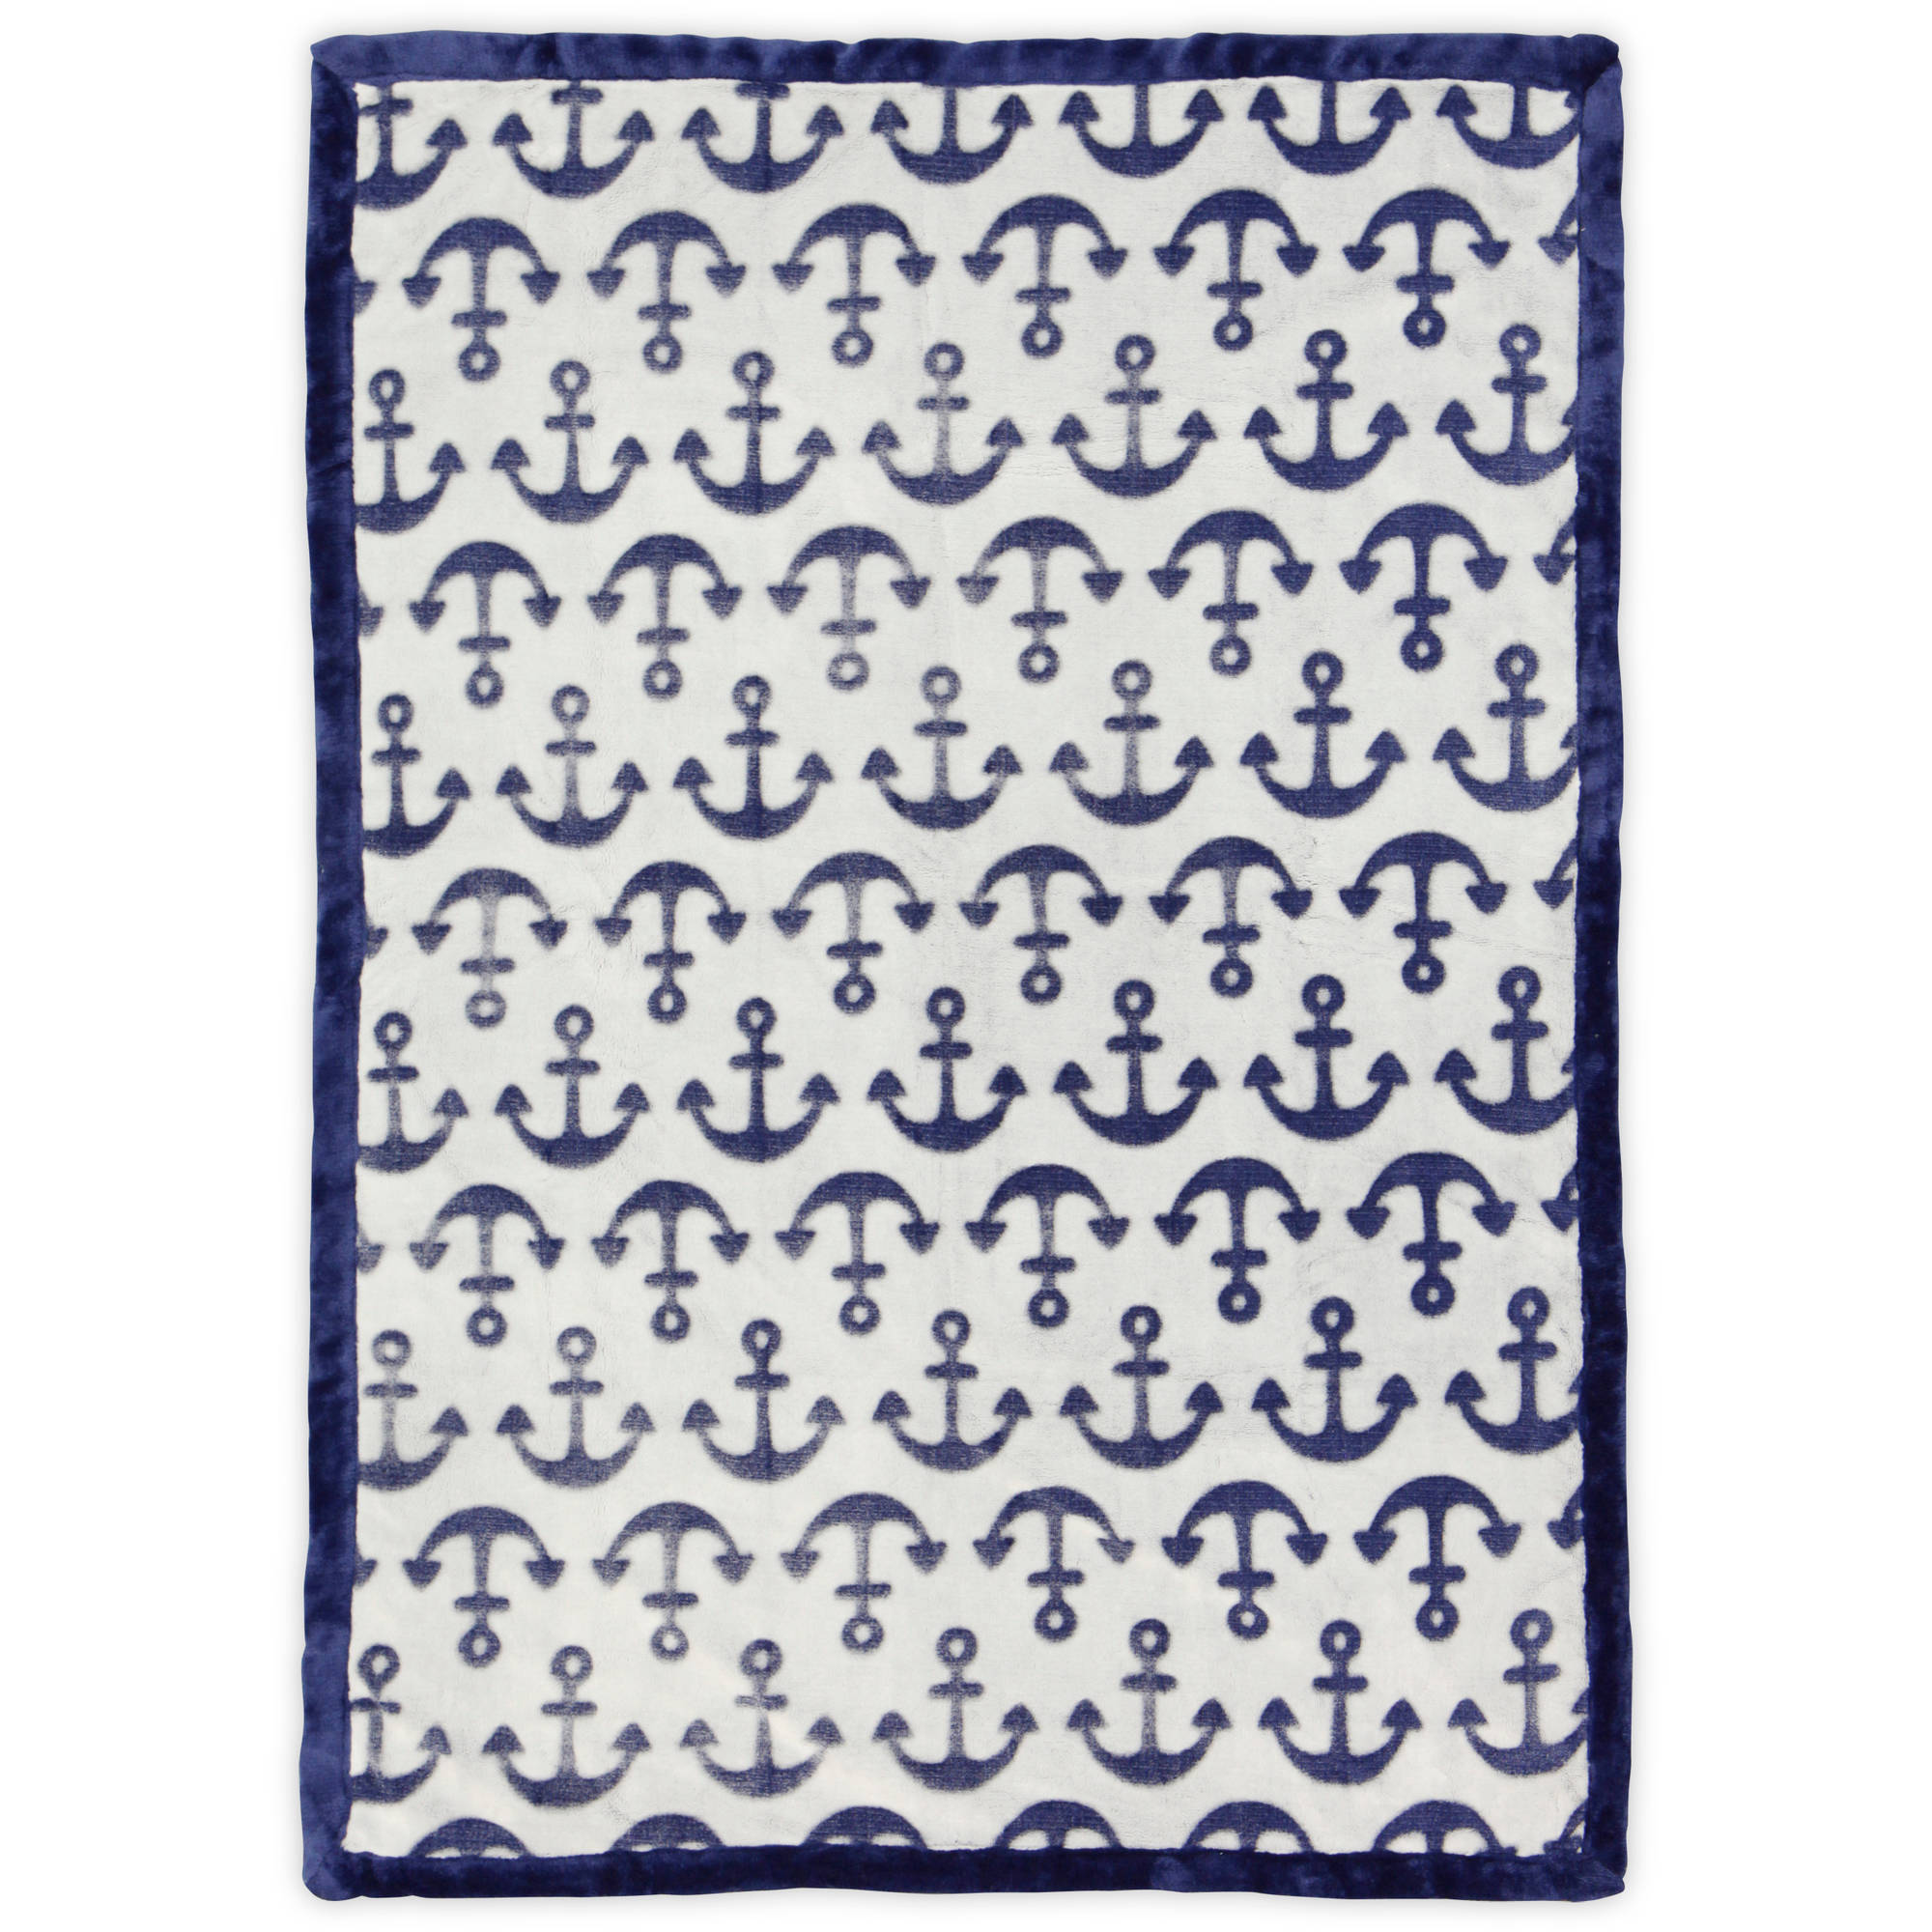 Bananafish Studio Nautical High Pile Blanket